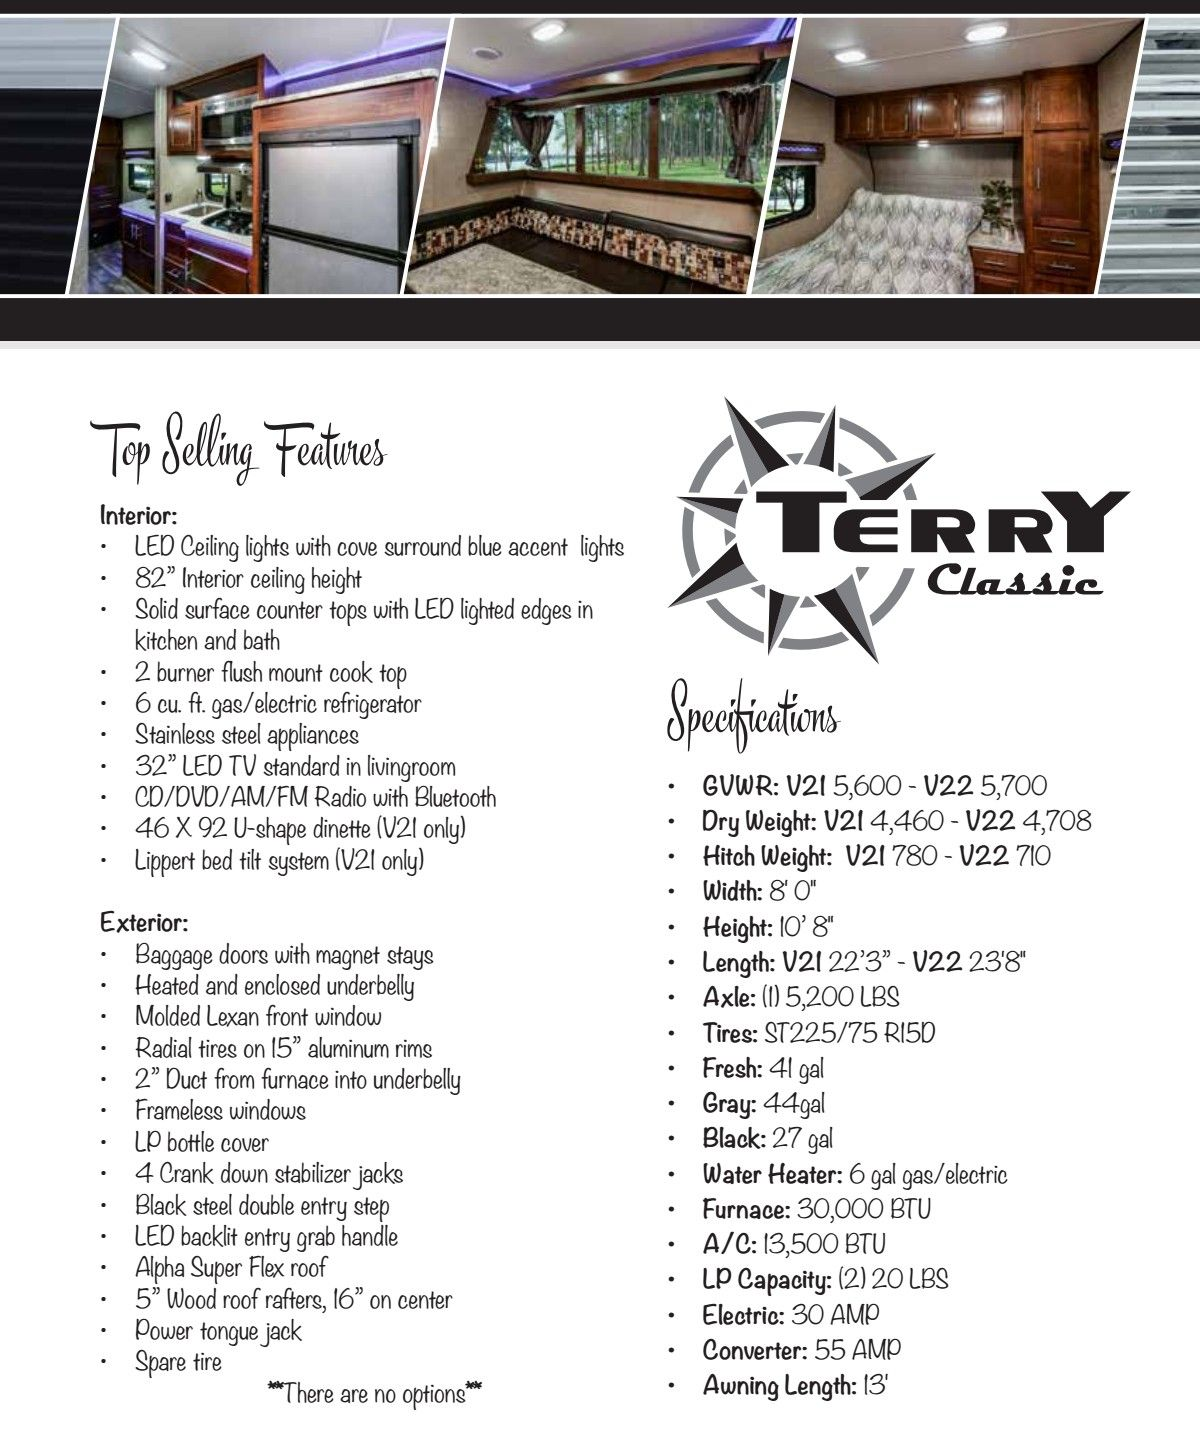 Standard kitchen window height  terry classic features  dolney rv center  pinterest  classic